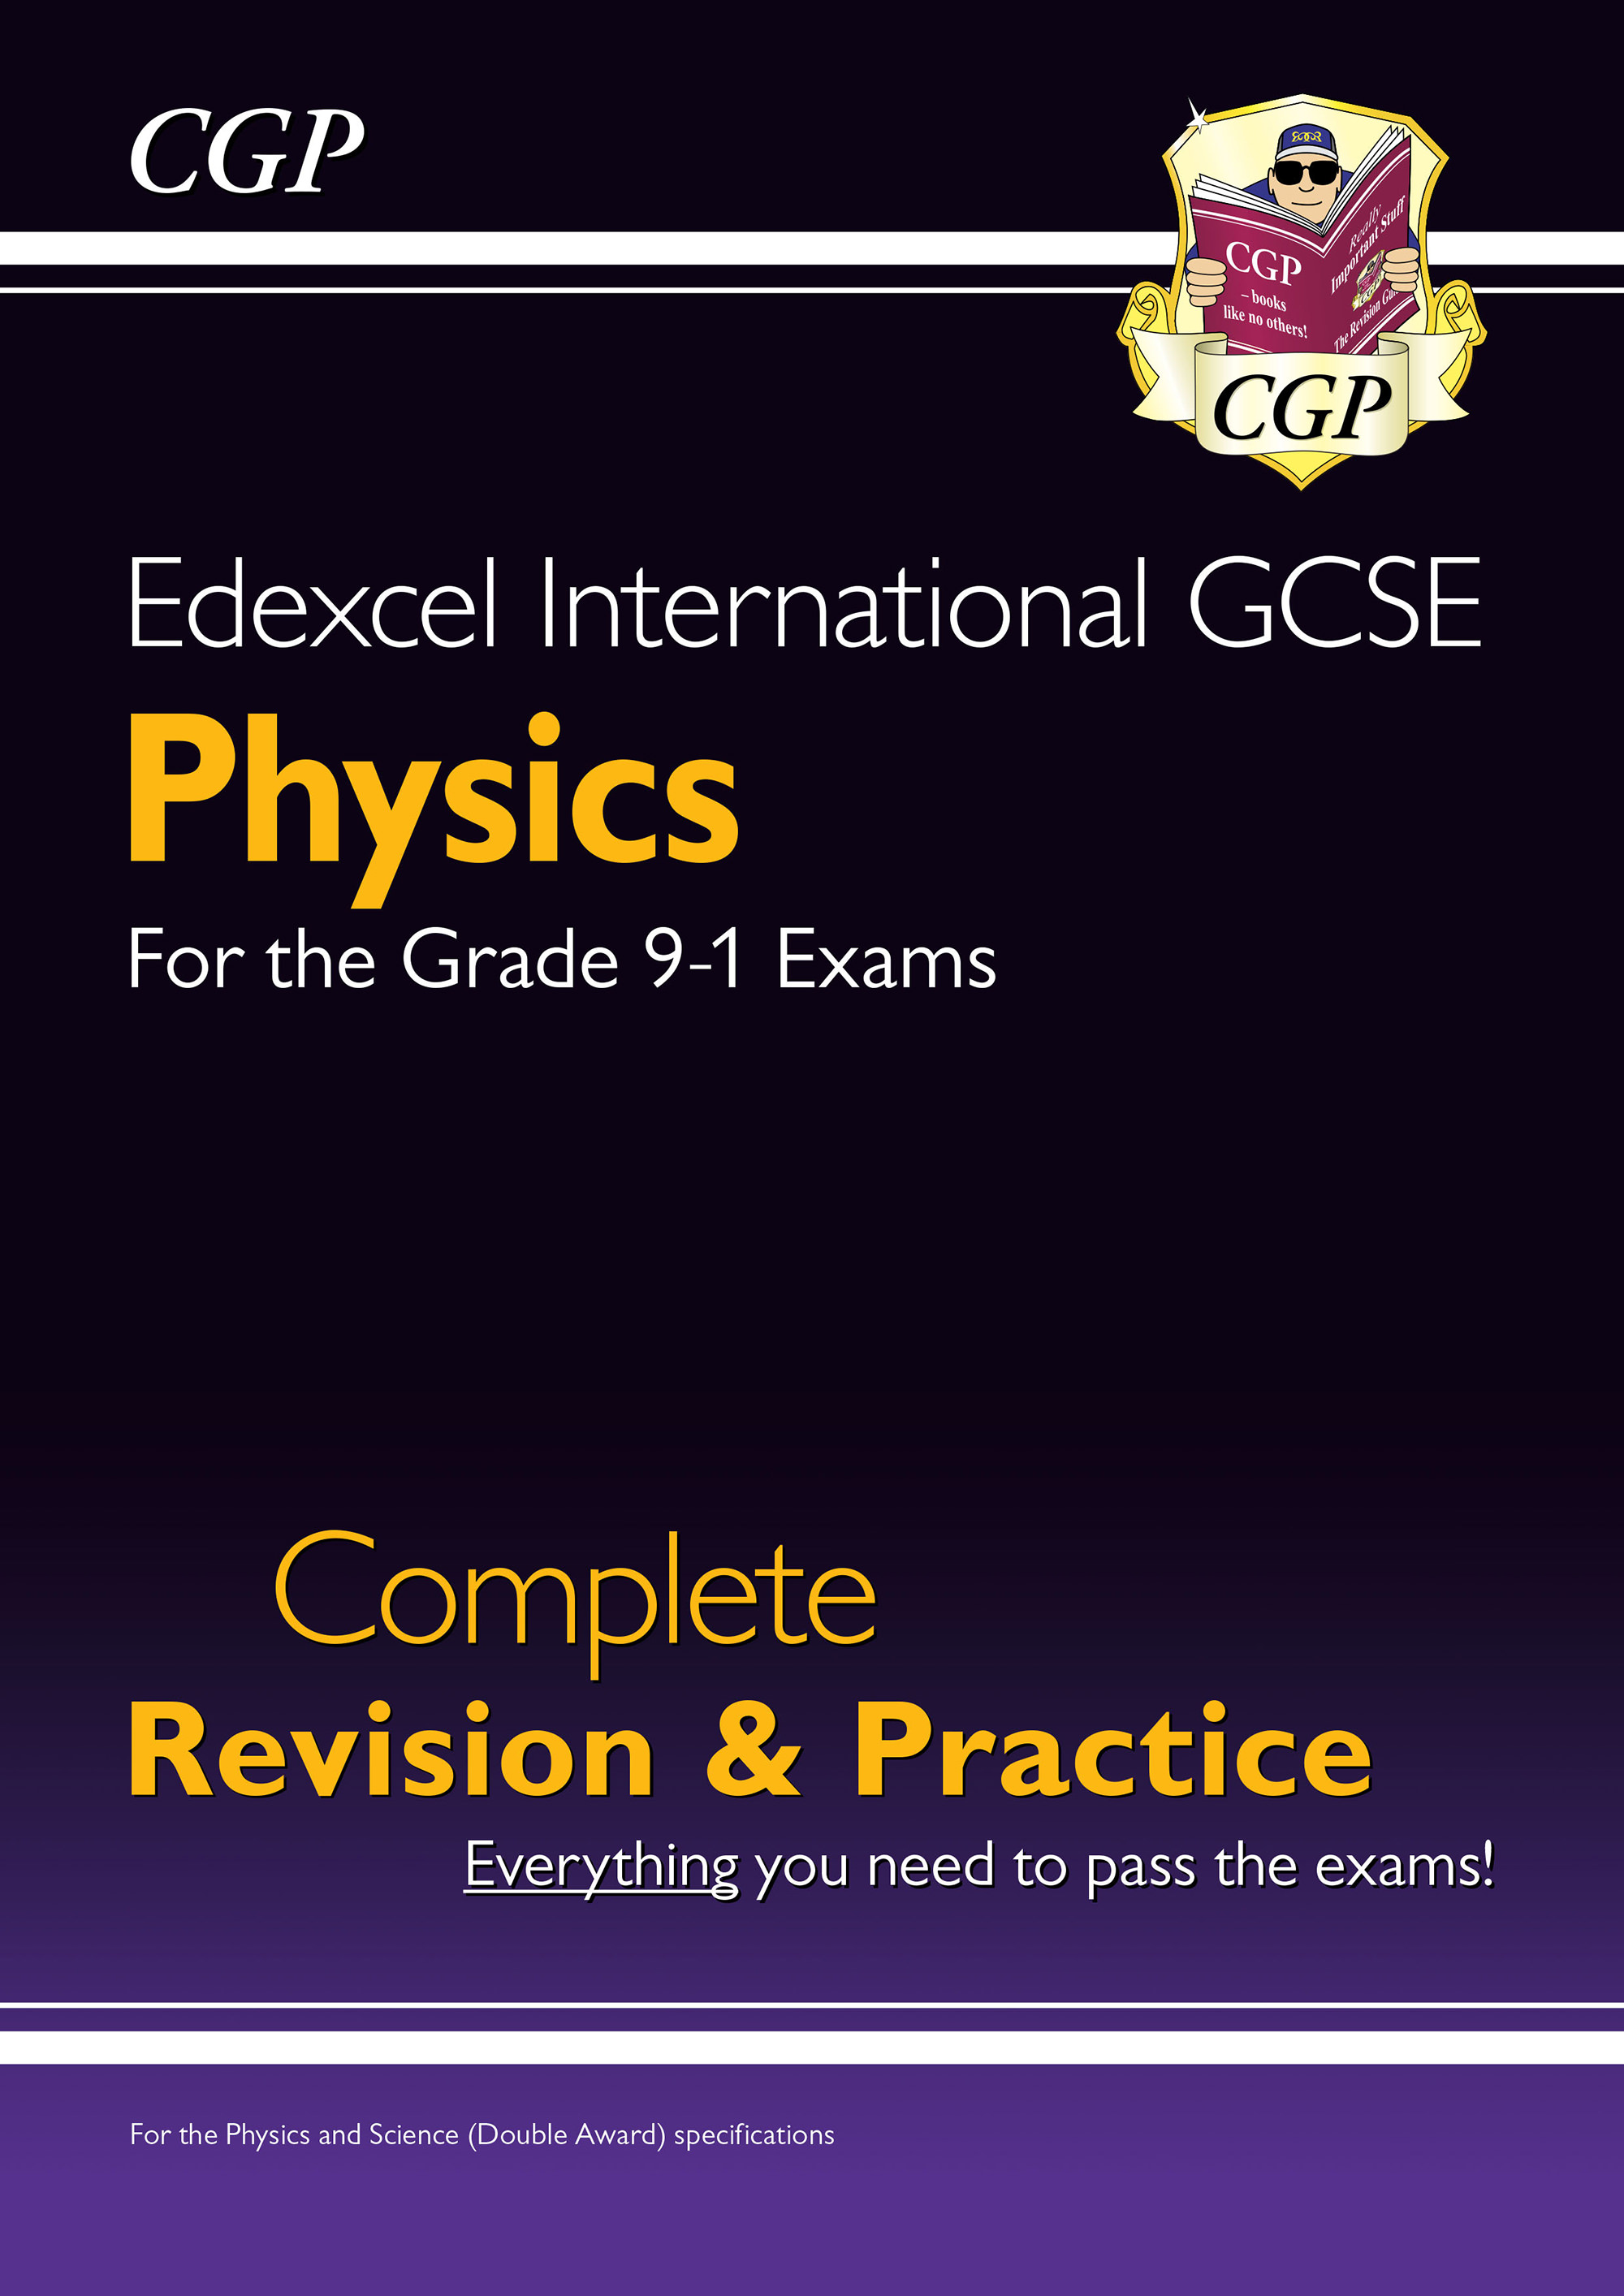 PESI42DK - New Grade 9-1 Edexcel International GCSE Physics: Complete Revision & Practice with Onlin